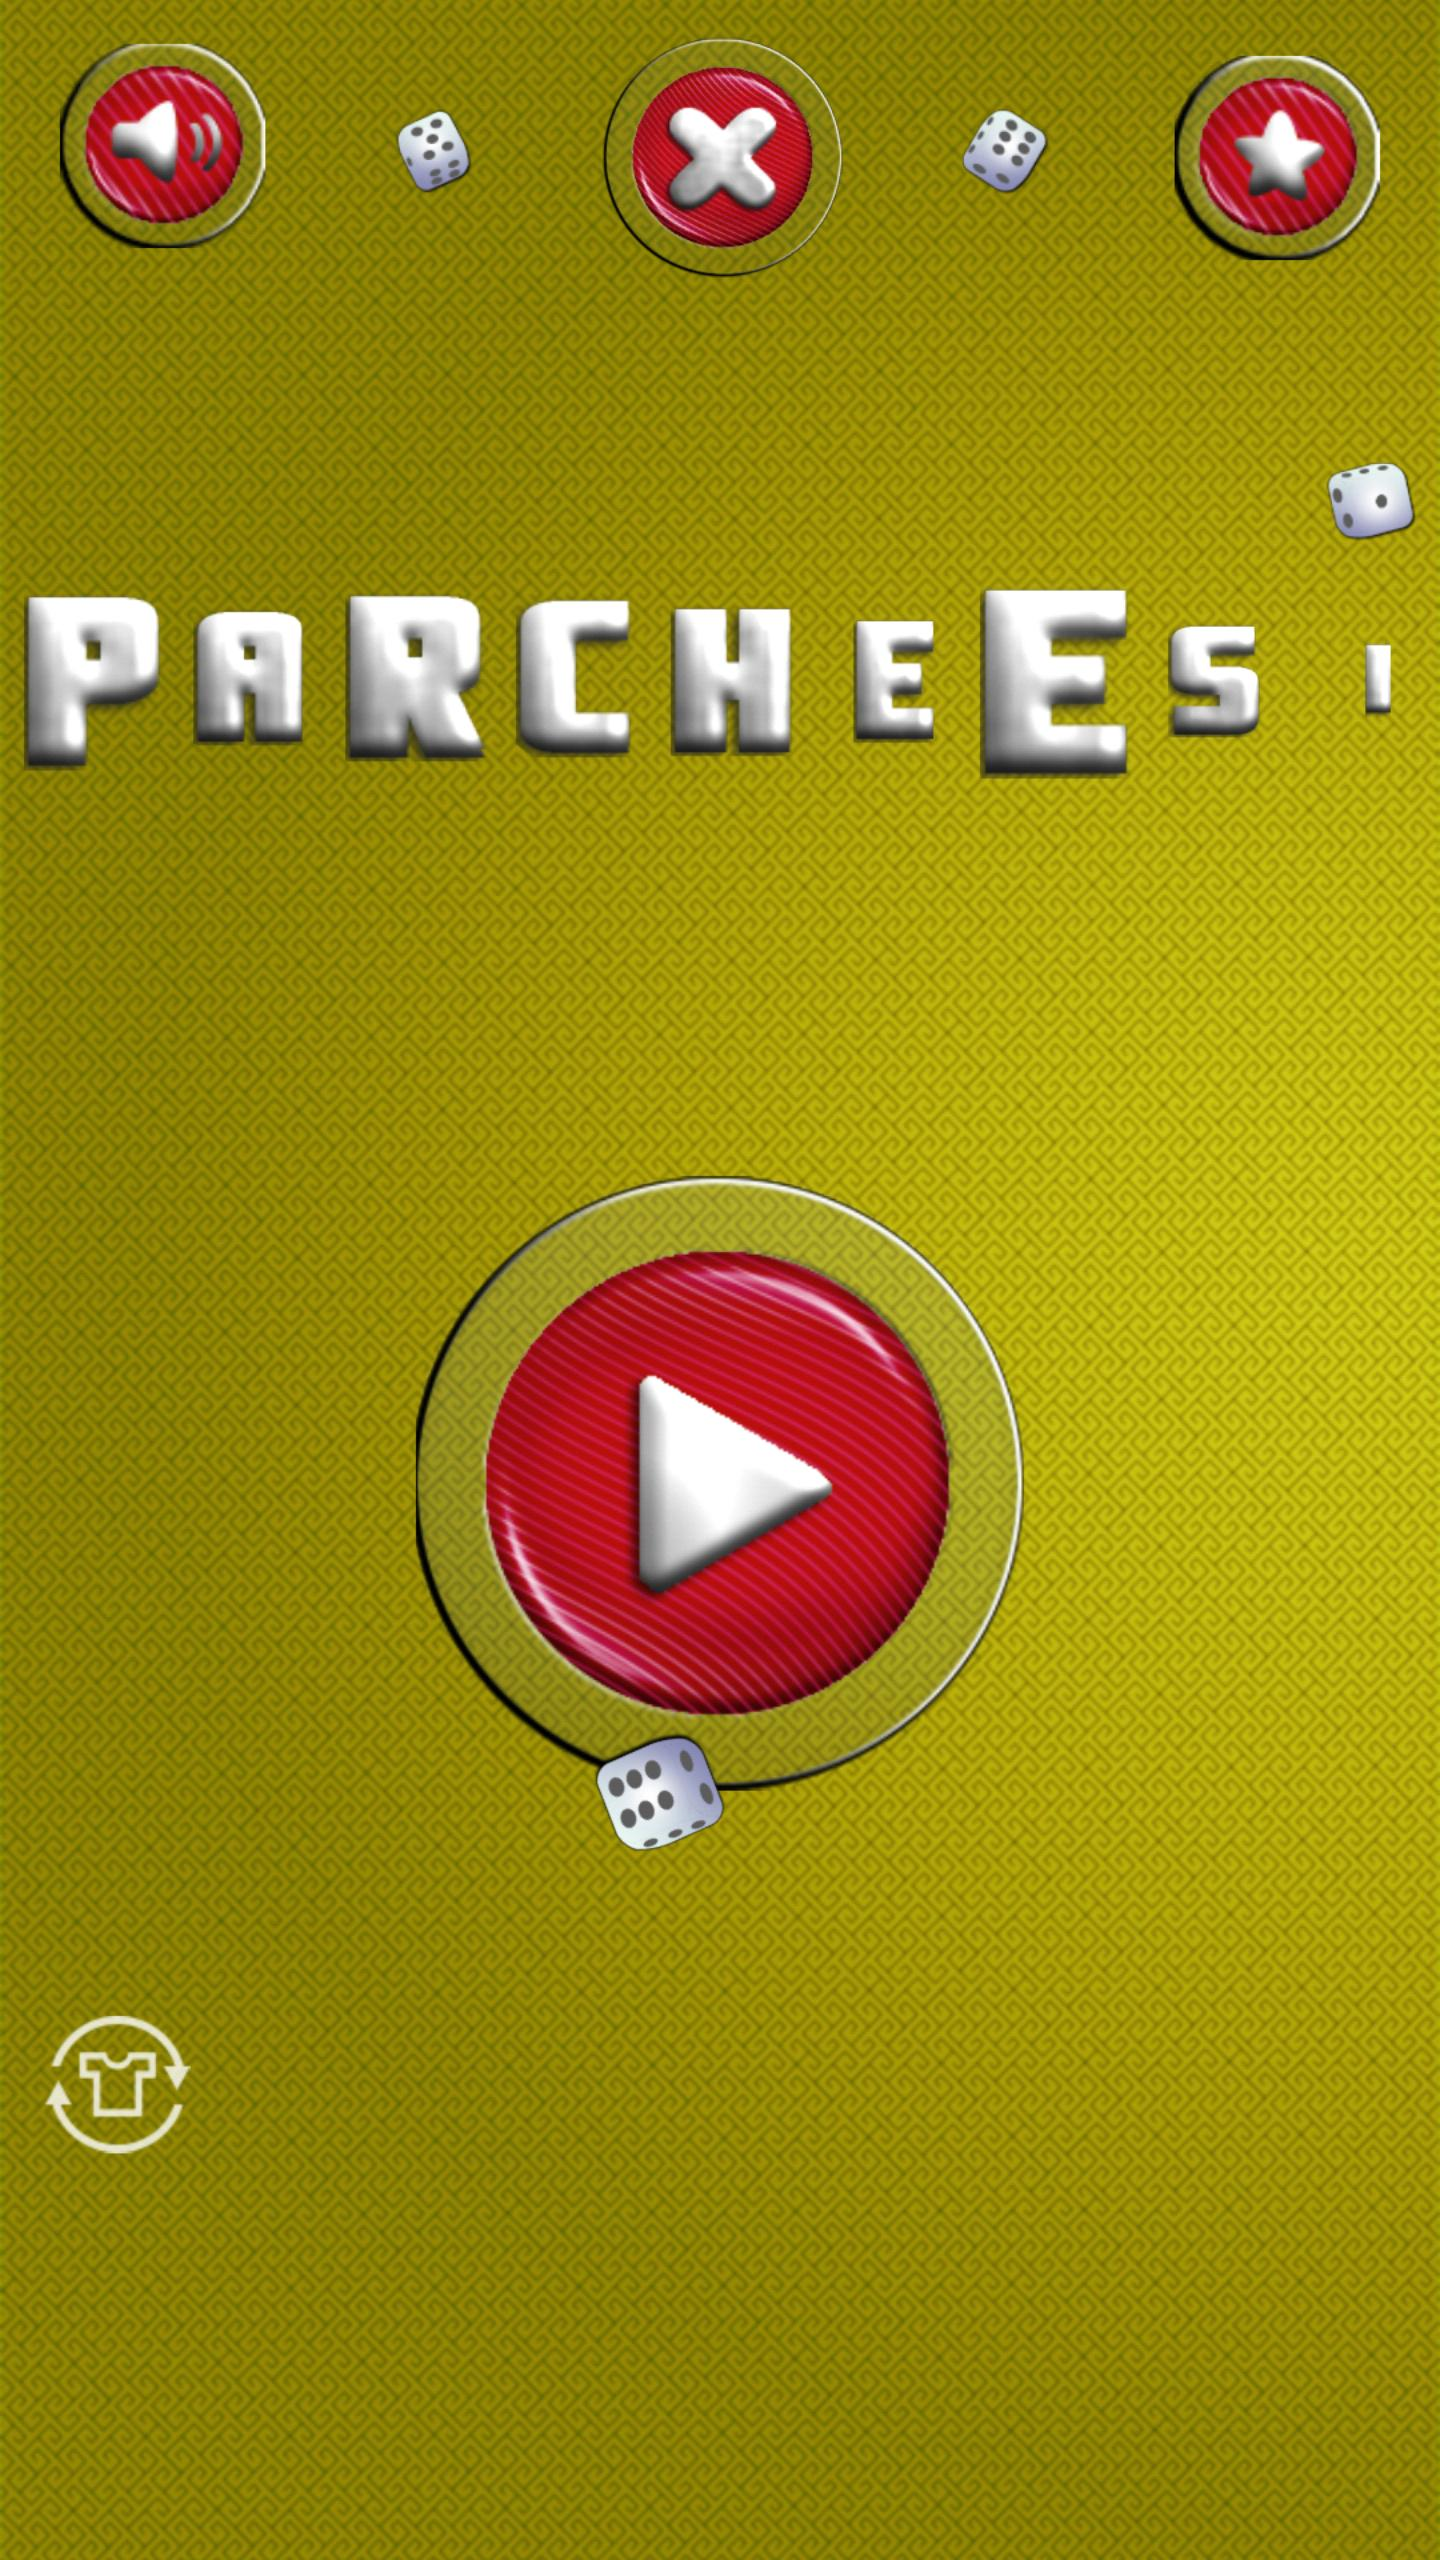 Parcheesi Board Game 2.2 Screenshot 4